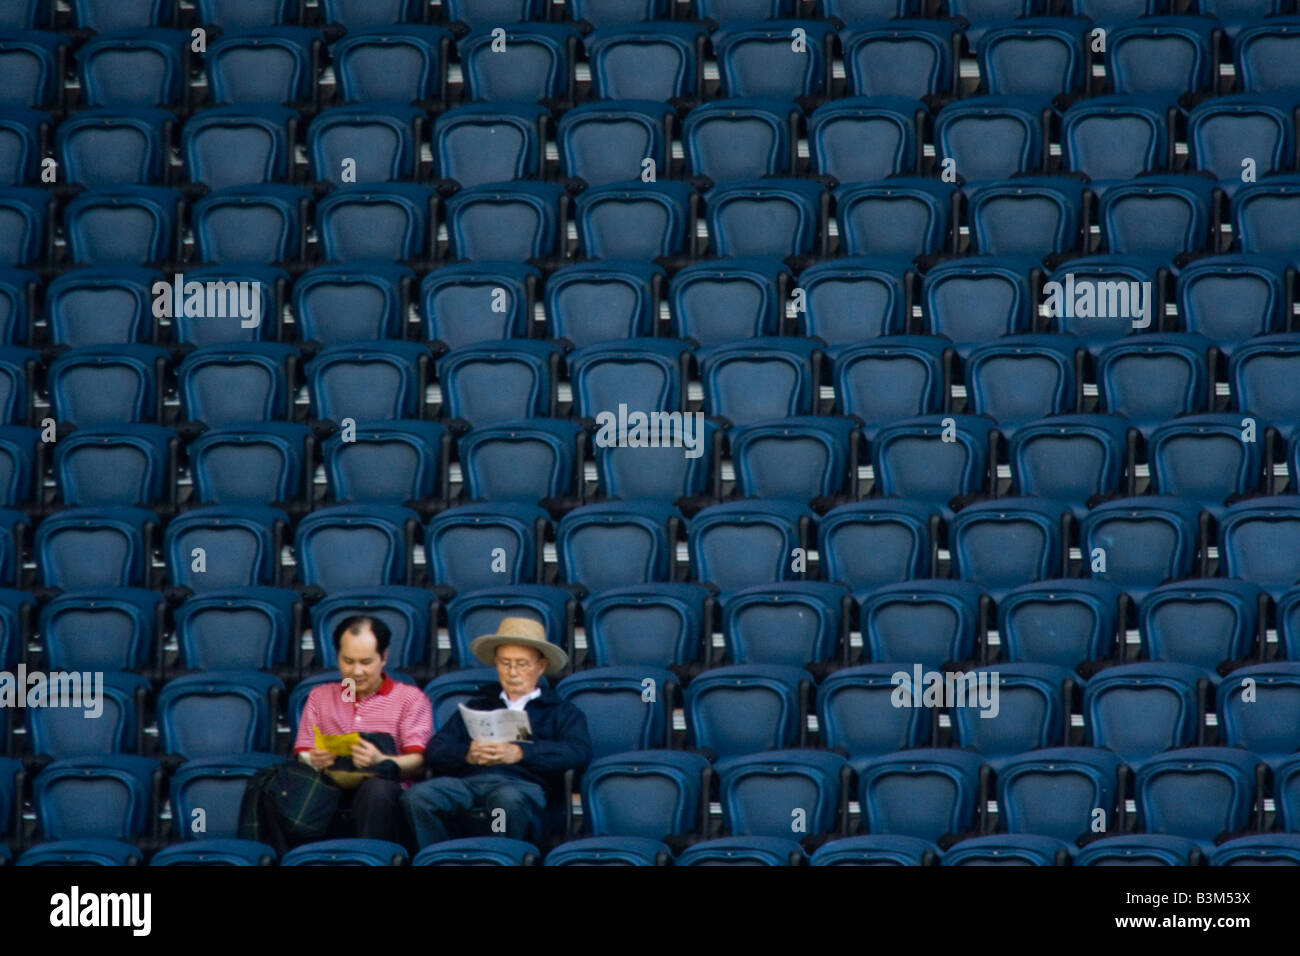 A few seats were empty at the Qwest Field during the main program at Quest Field organized for the Dalai Lama s - Stock Image